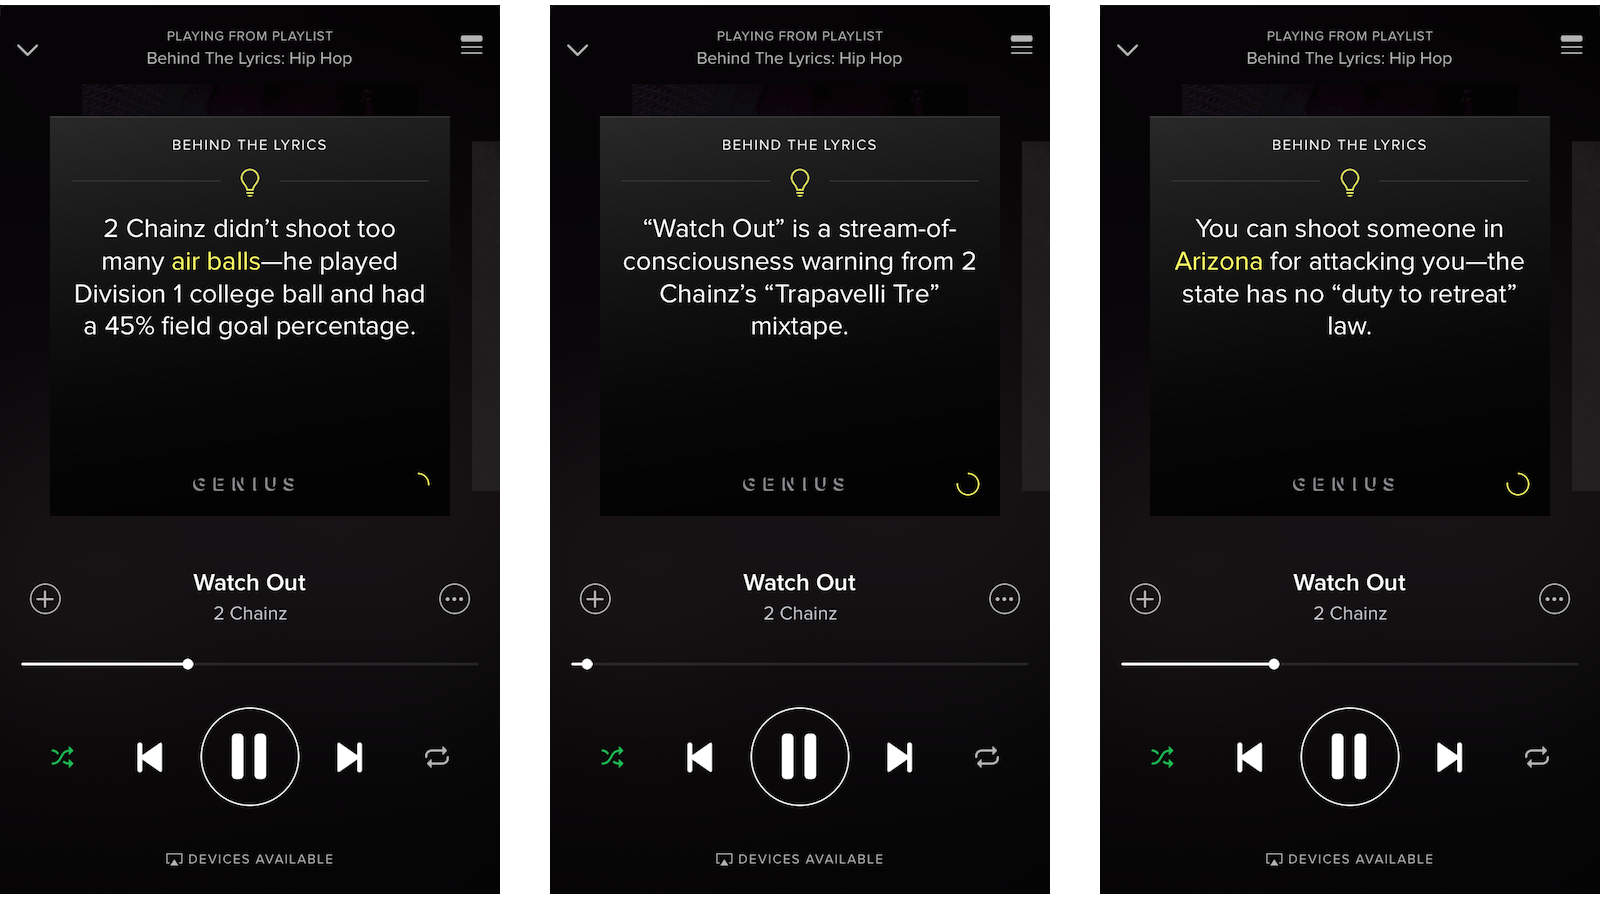 Spotify's new 'Behind the Lyrics' playlists decipher your